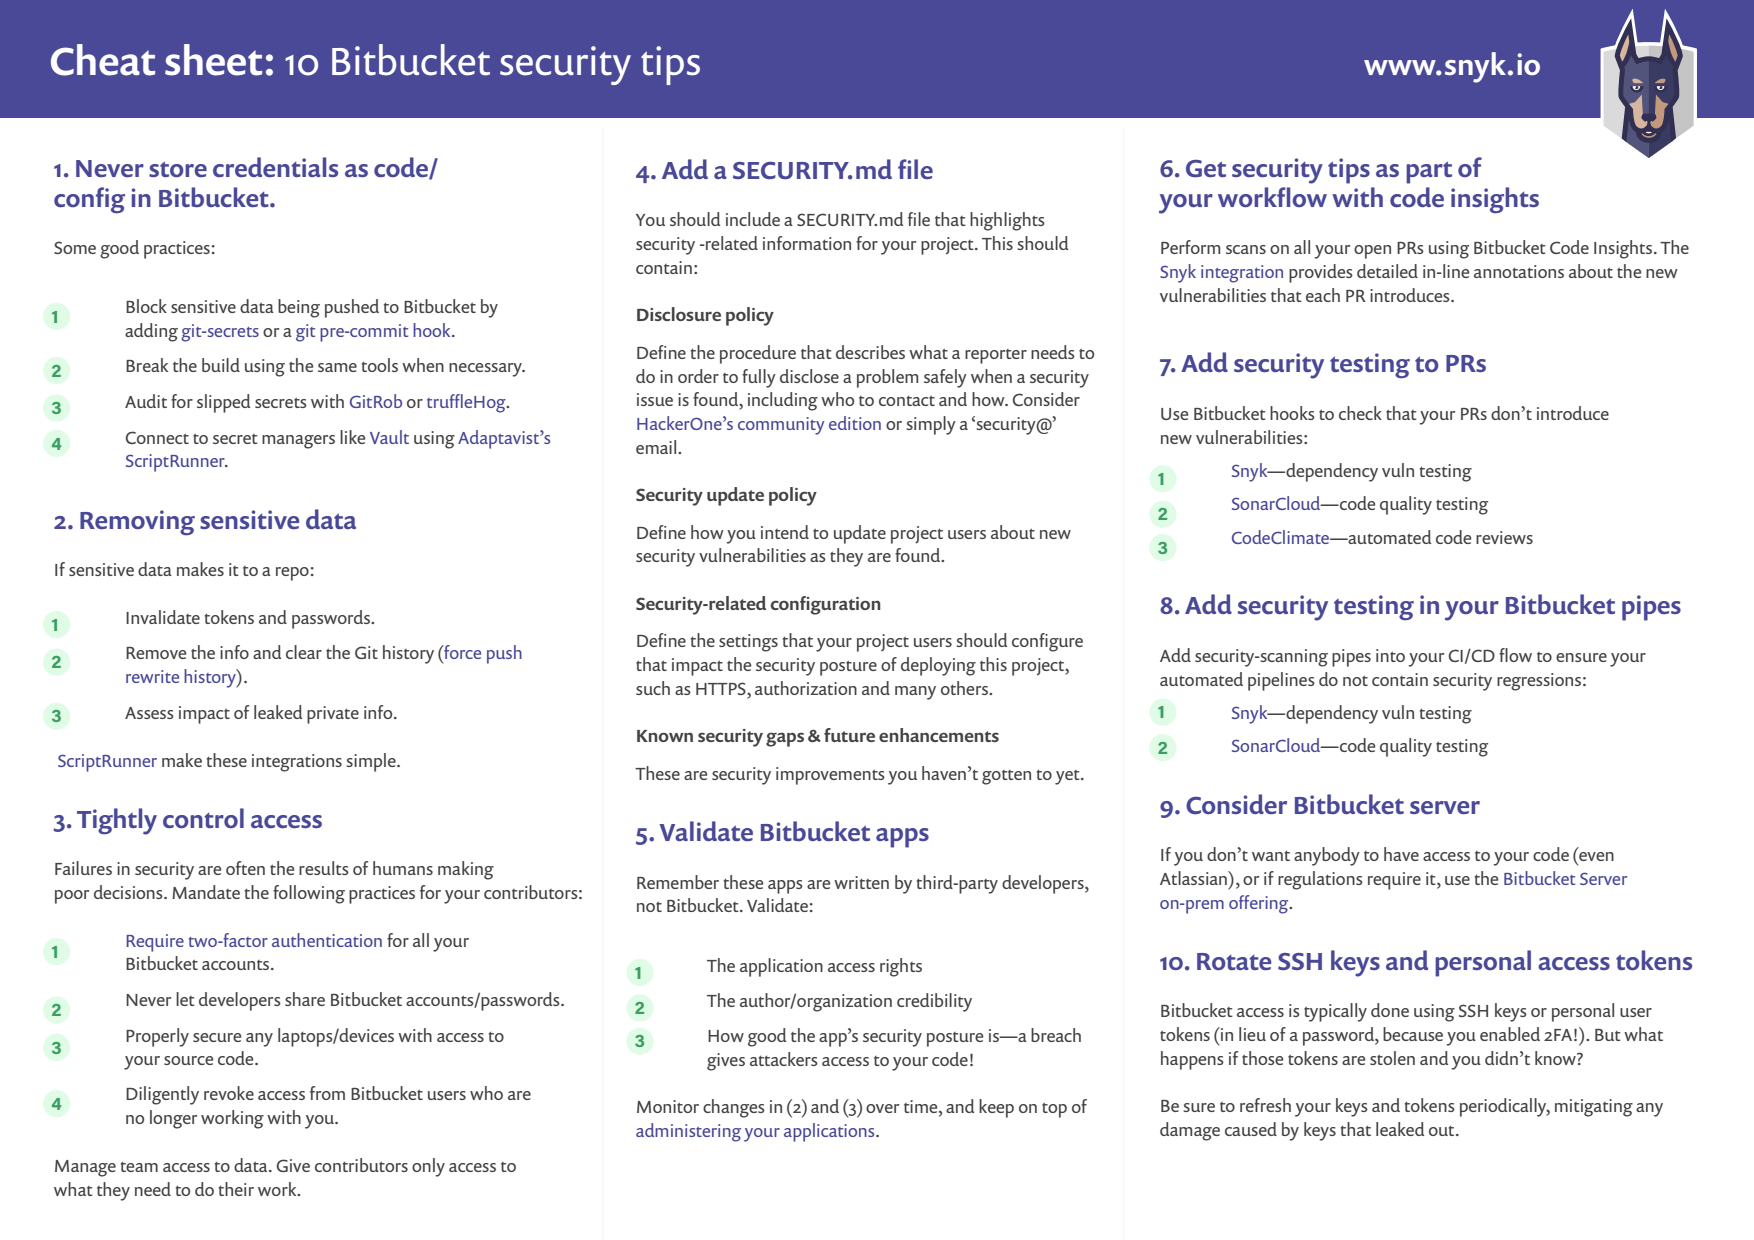 Cheat sheet: 10 Bitbucket security best practices | Snyk